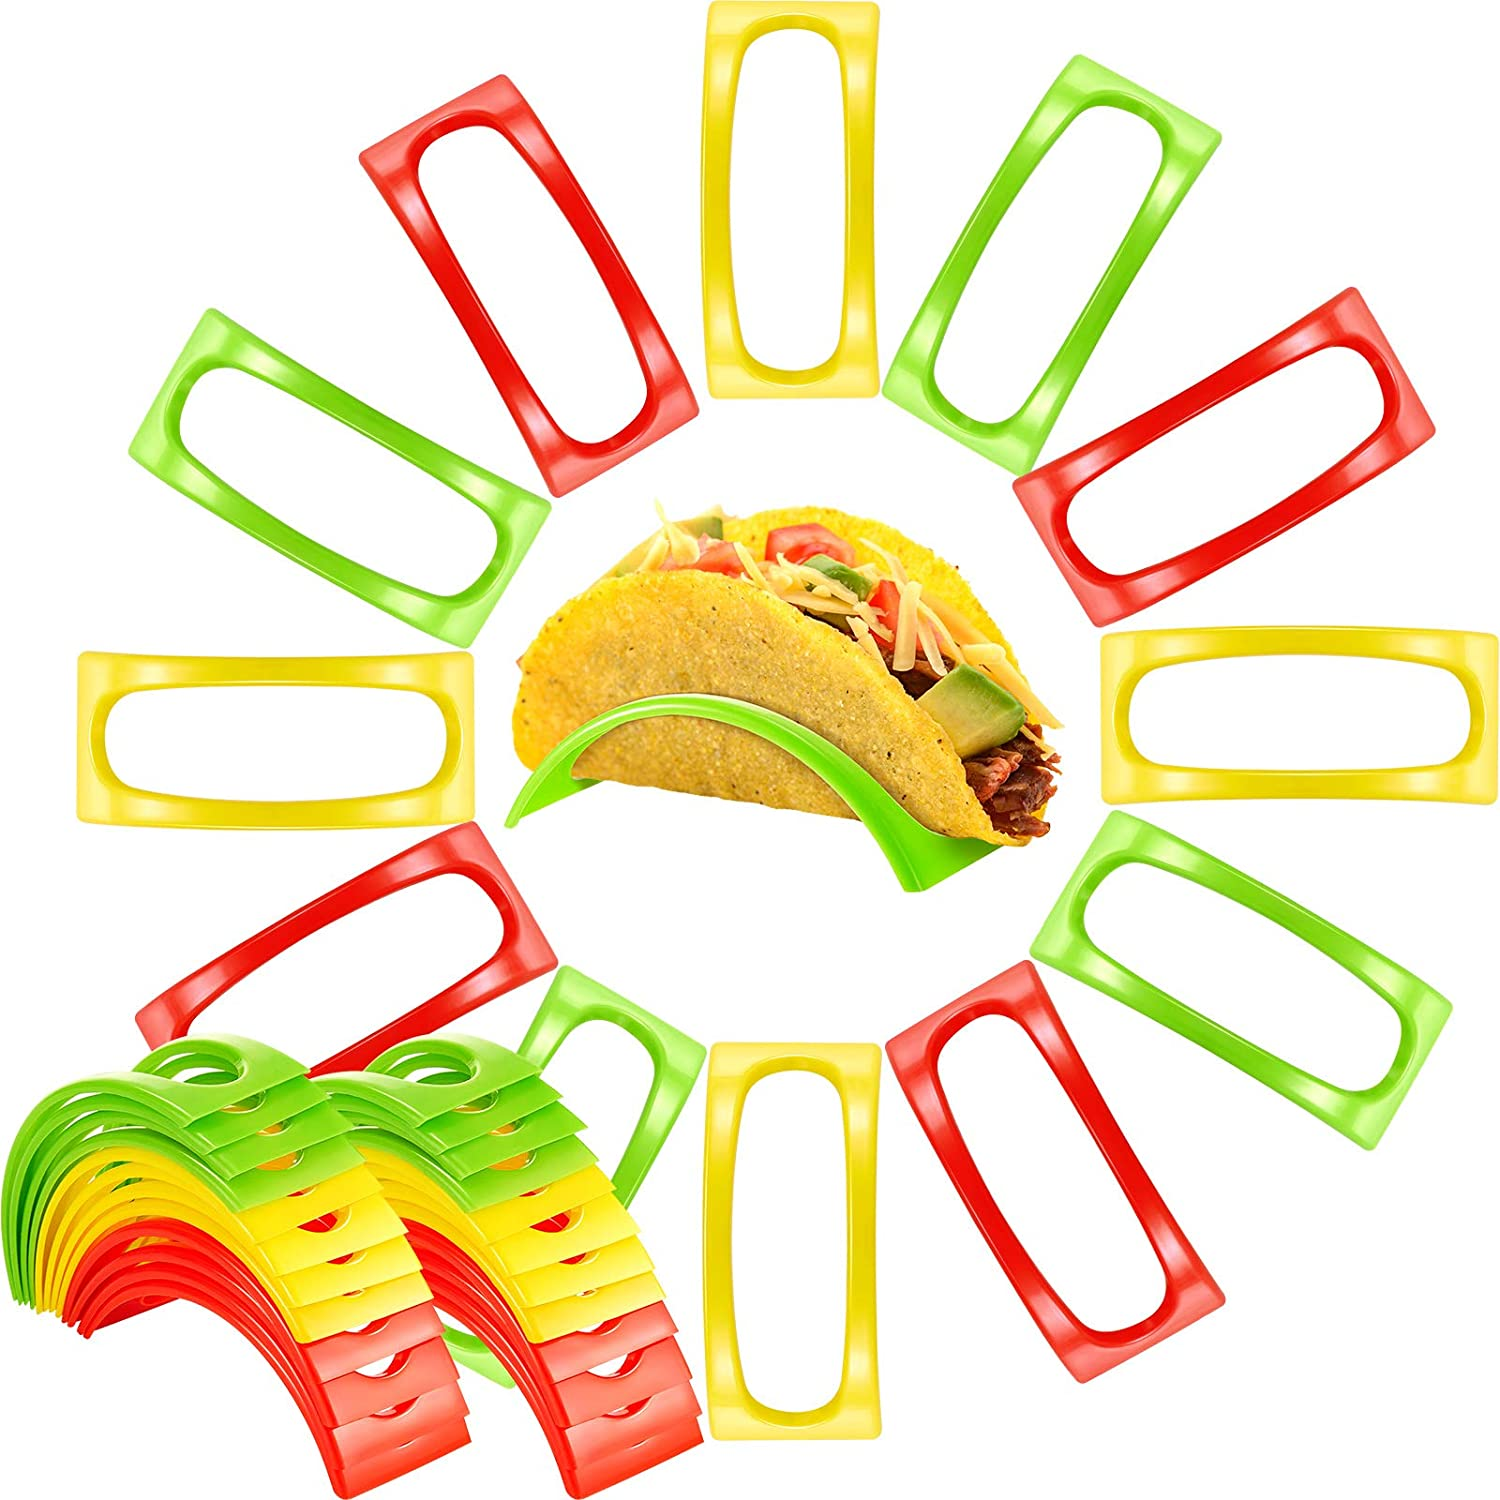 36 Pieces Taco Plastic Independent Cup Racks Set Holders Stand Tray Home Goods Taco Tray Taco Shell HolderRack TacoHolderStands forTortillasBurritosHomePartyRestaurant, Red, Yellow and Green